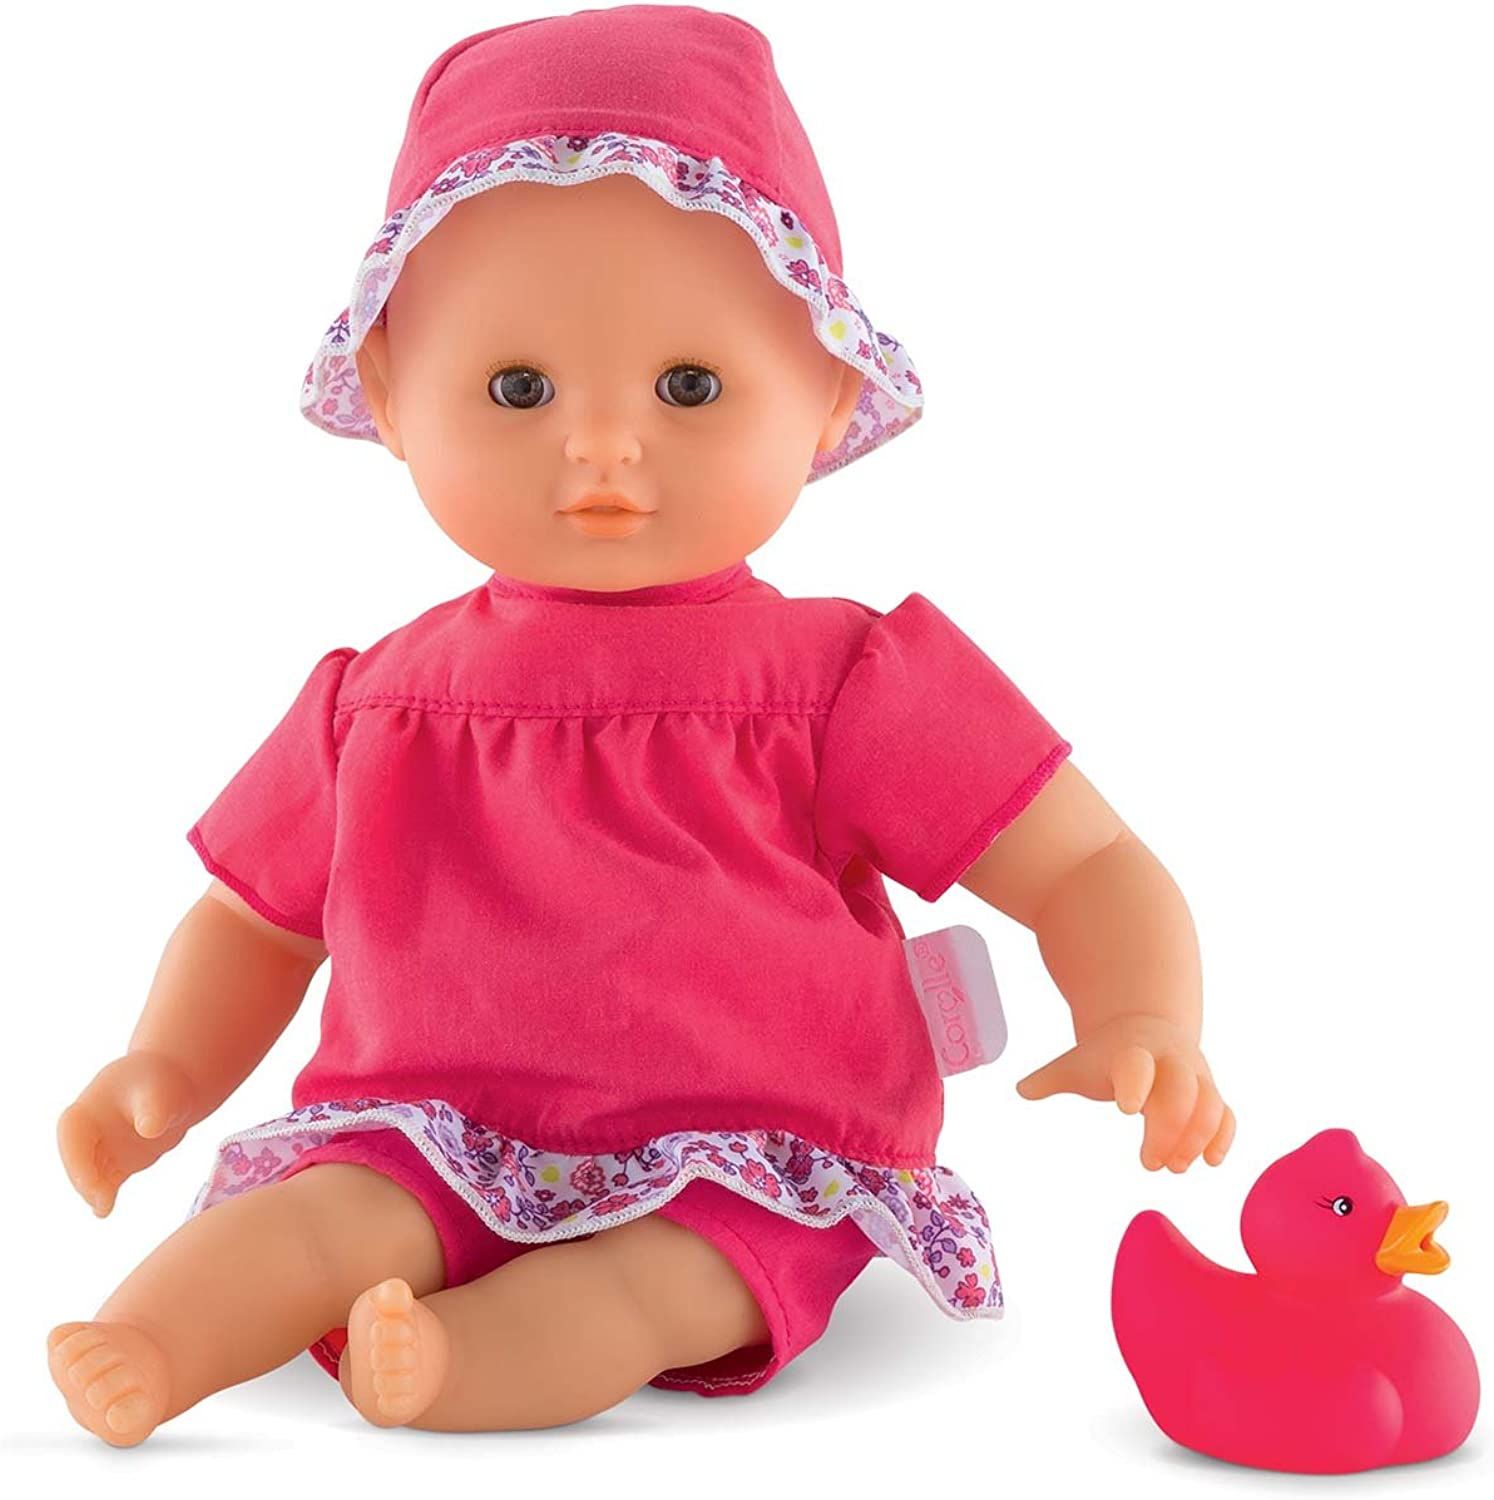 Cgoldlle Mon Premier Poupon Bebe Bath Flowers Toy Baby Doll, Pink